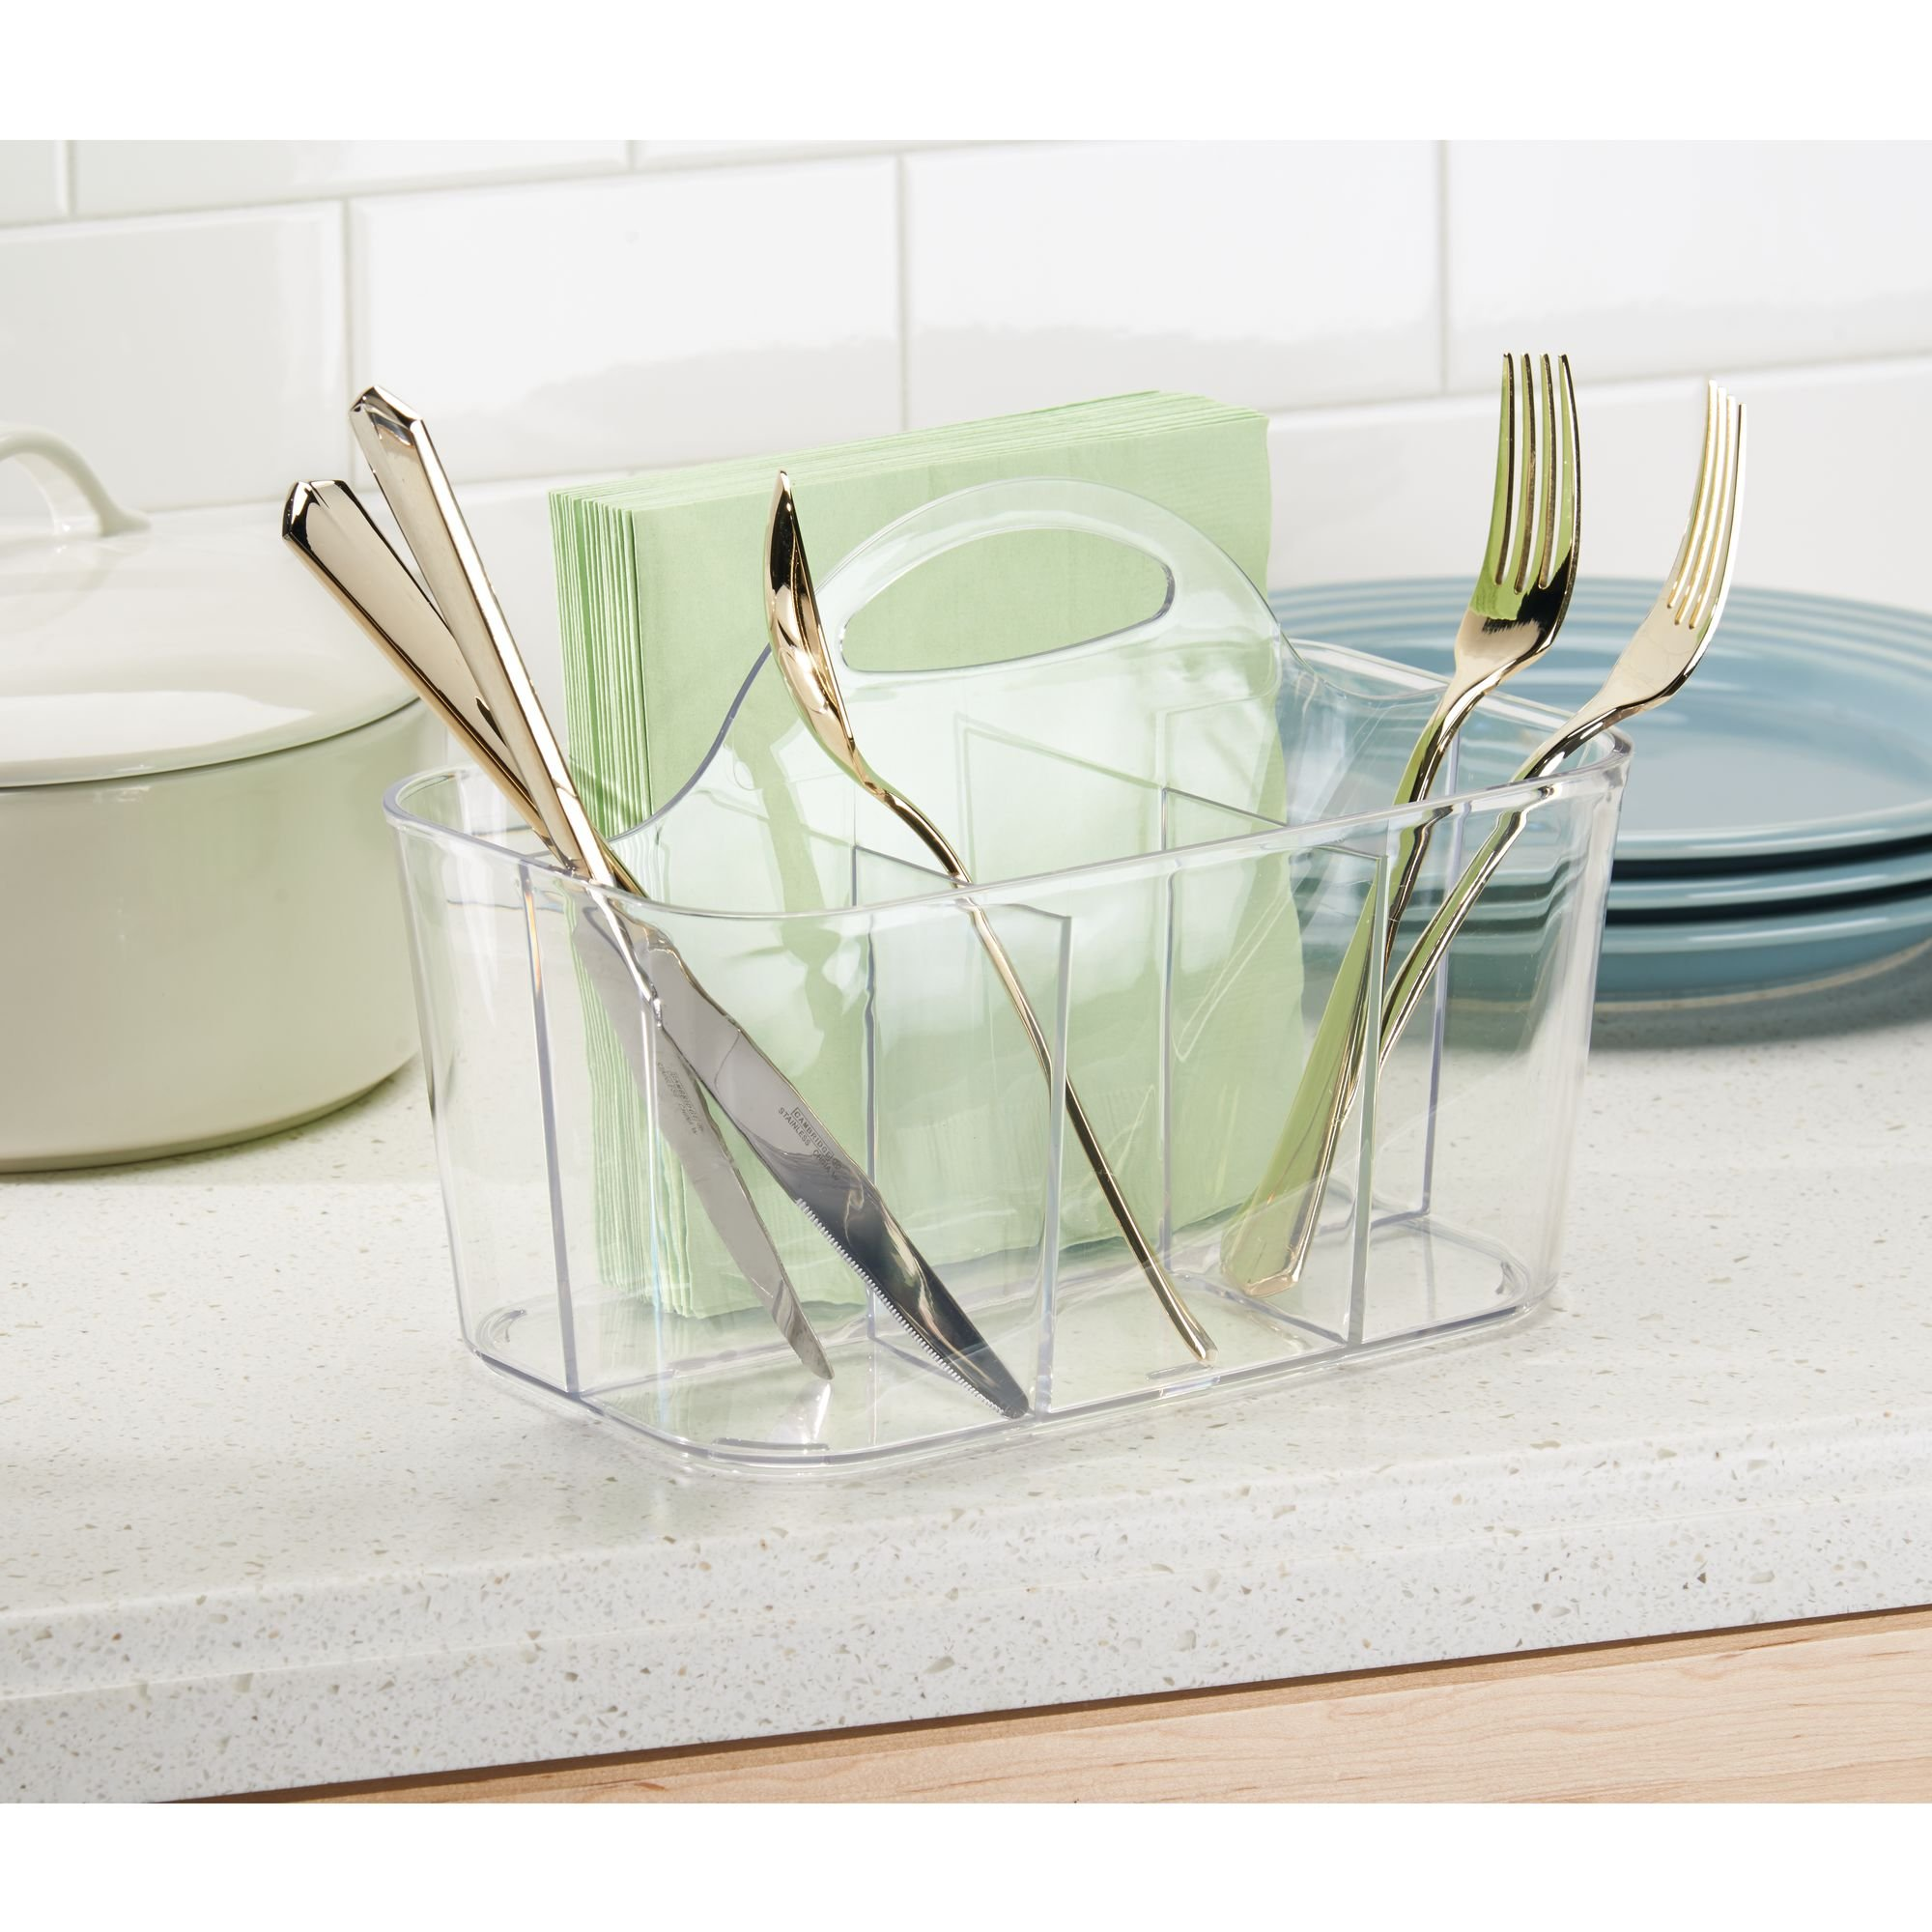 InterDesign Clarity Cutlery Flatware Caddy, Silverware, Utensil, and Napkin Holder - Clear by InterDesign (Image #3)